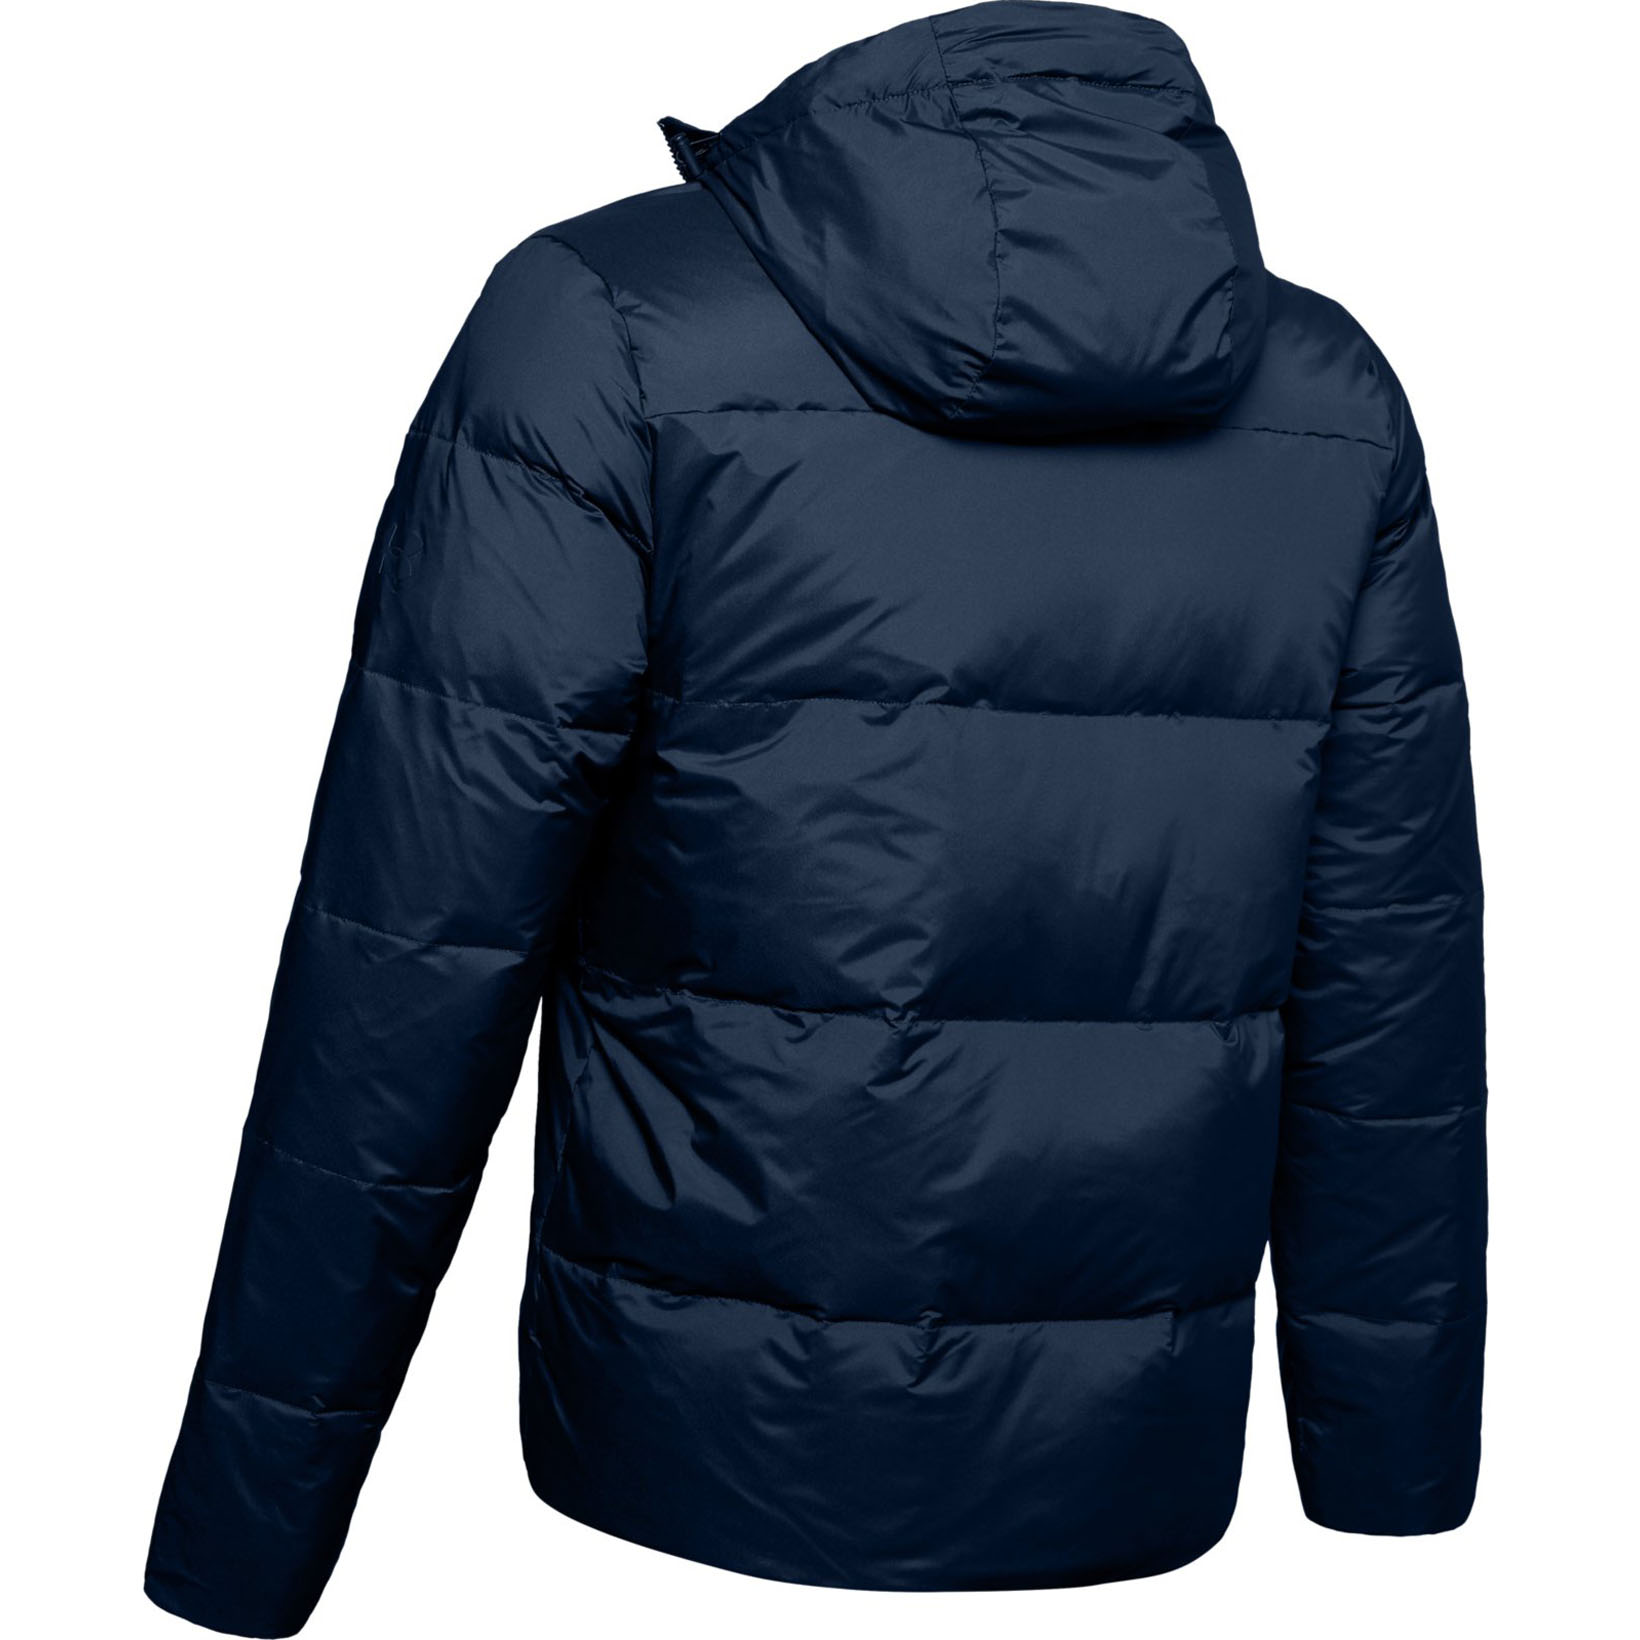 Пуховик Down 600 Fill Power Hooded Jacket Under Armour Синий фото 4